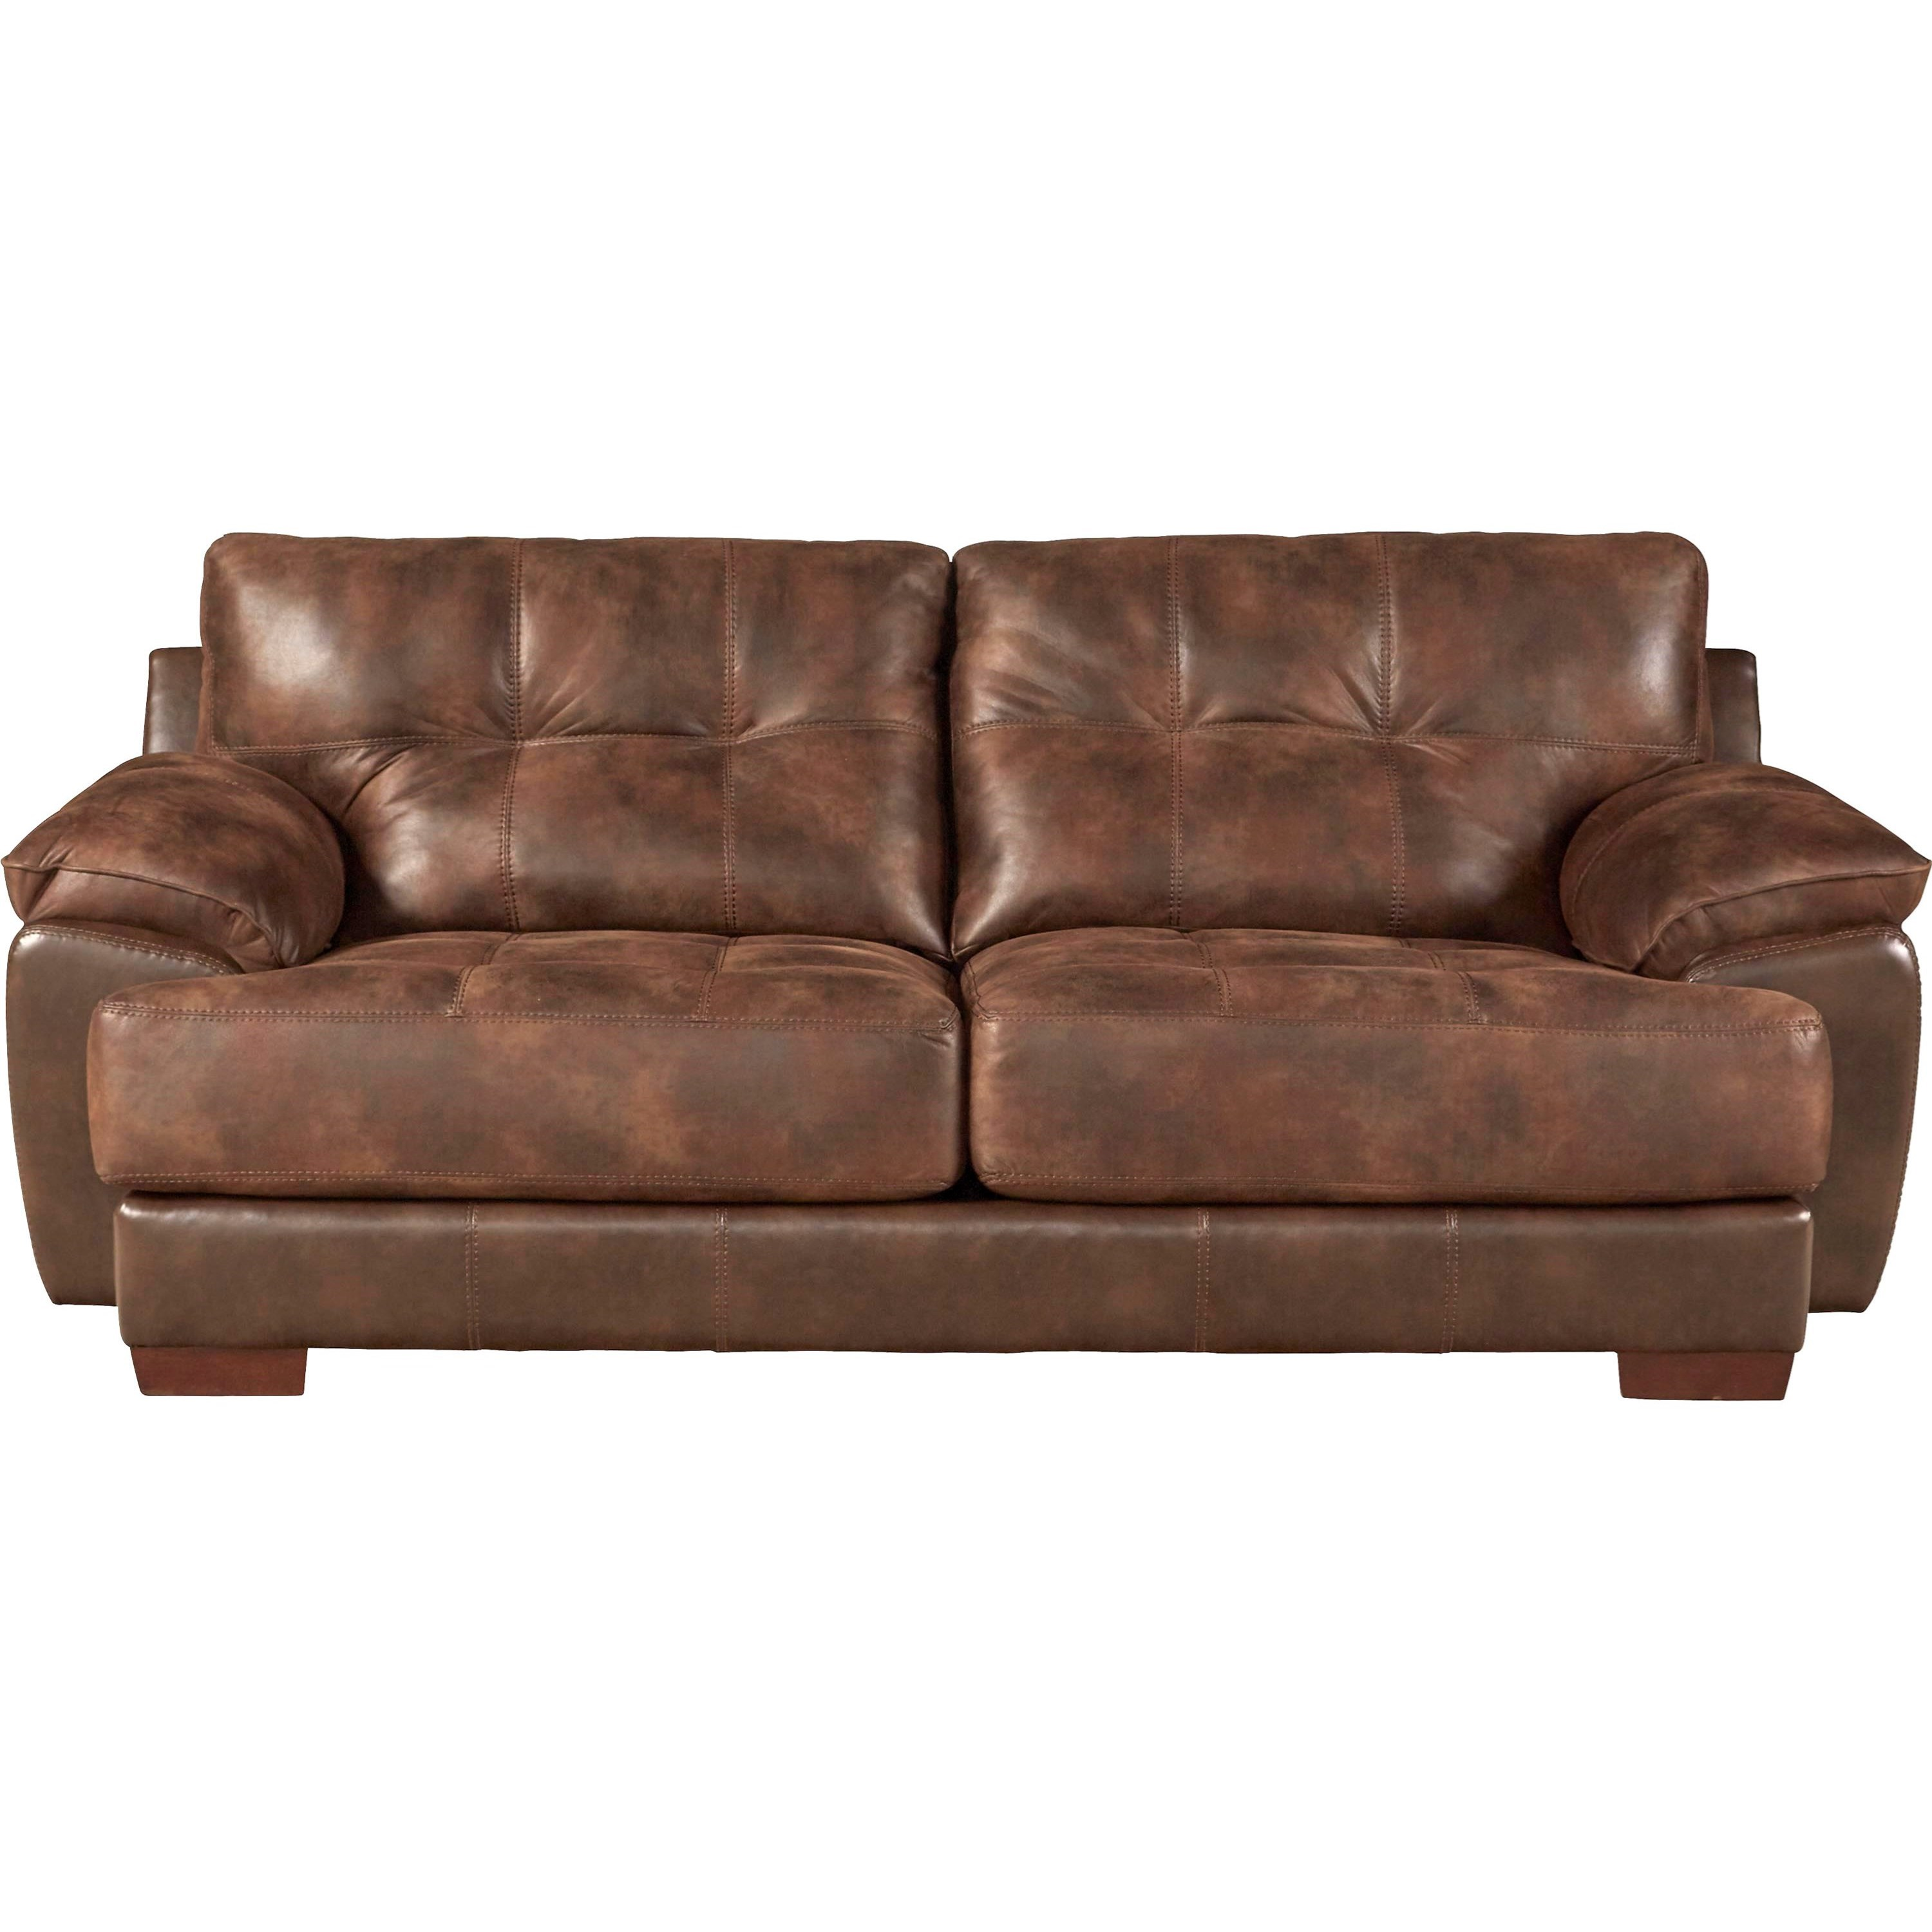 Two Seat Sofa With Exposed Wood Feet By Jackson Furniture